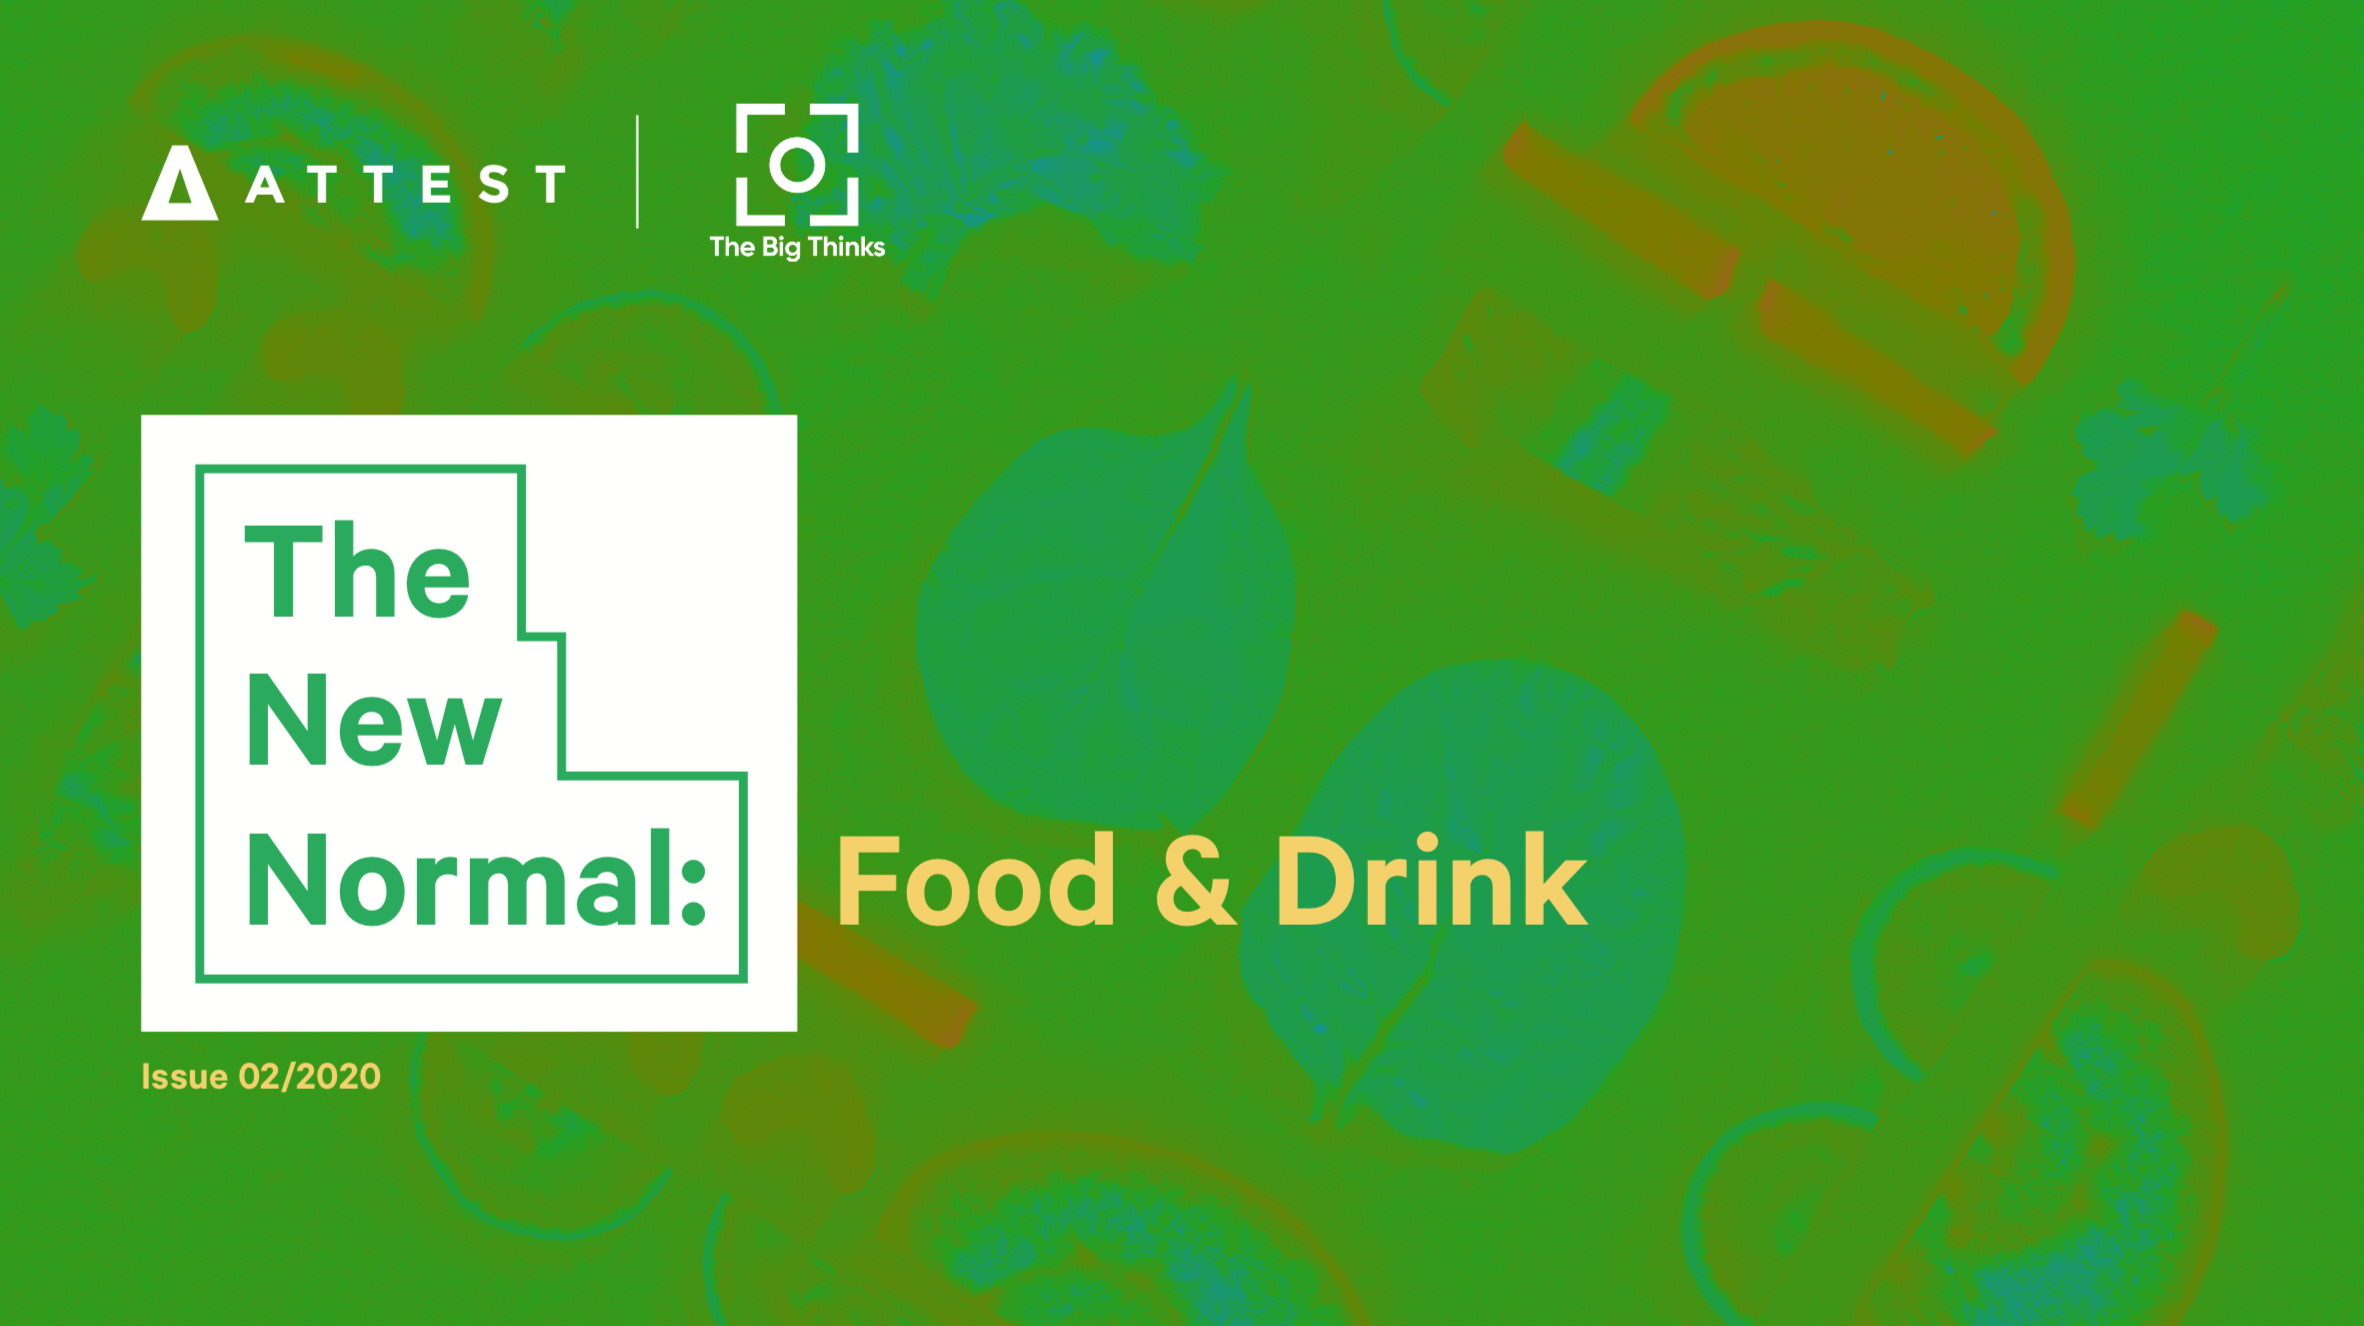 The New Normal: Food & Drink